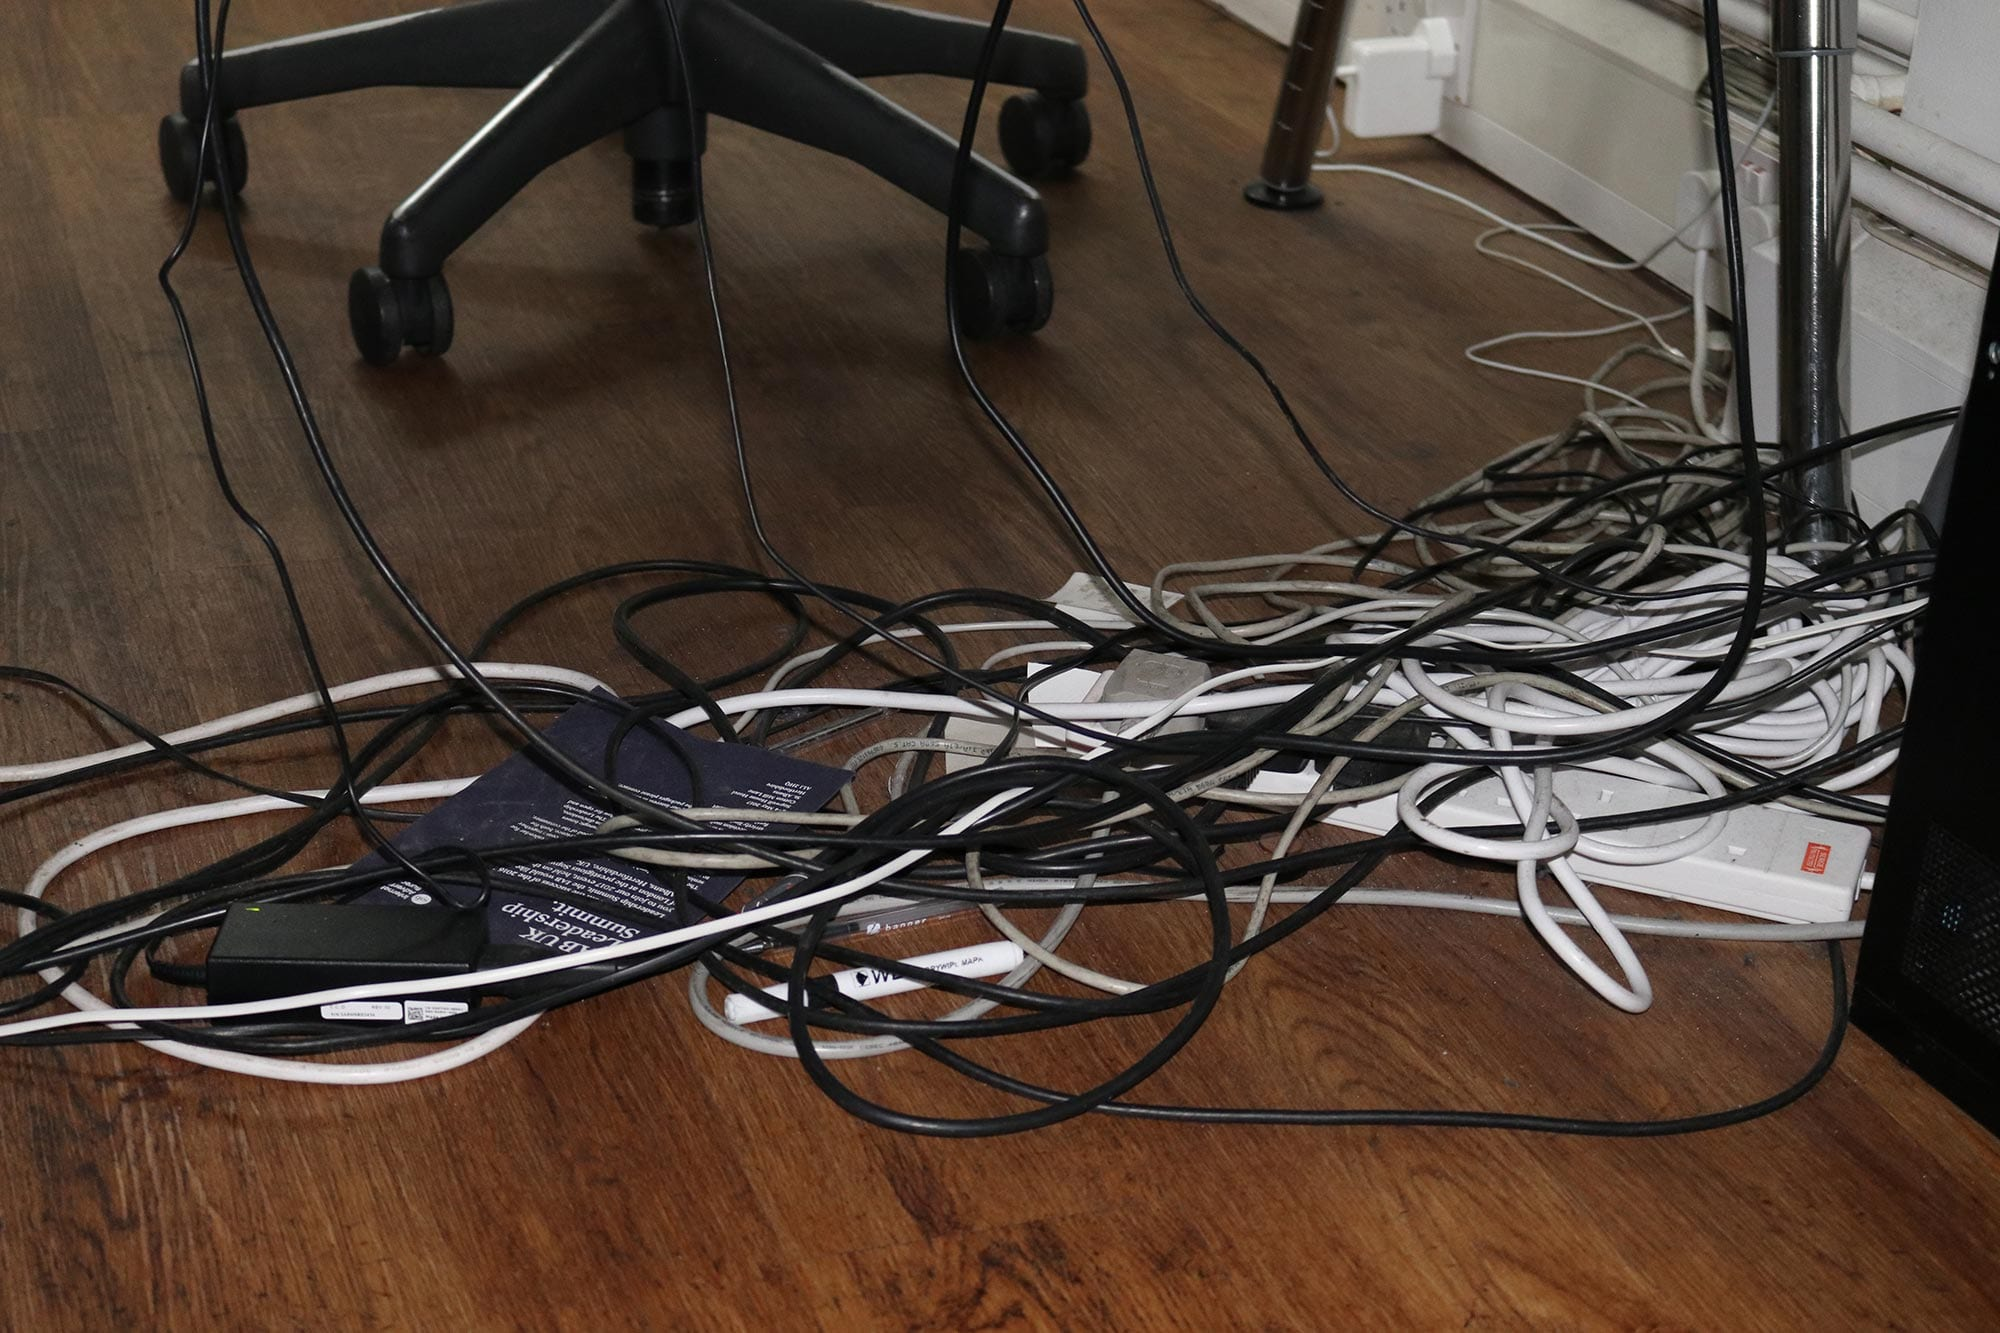 Under-desk-cable management